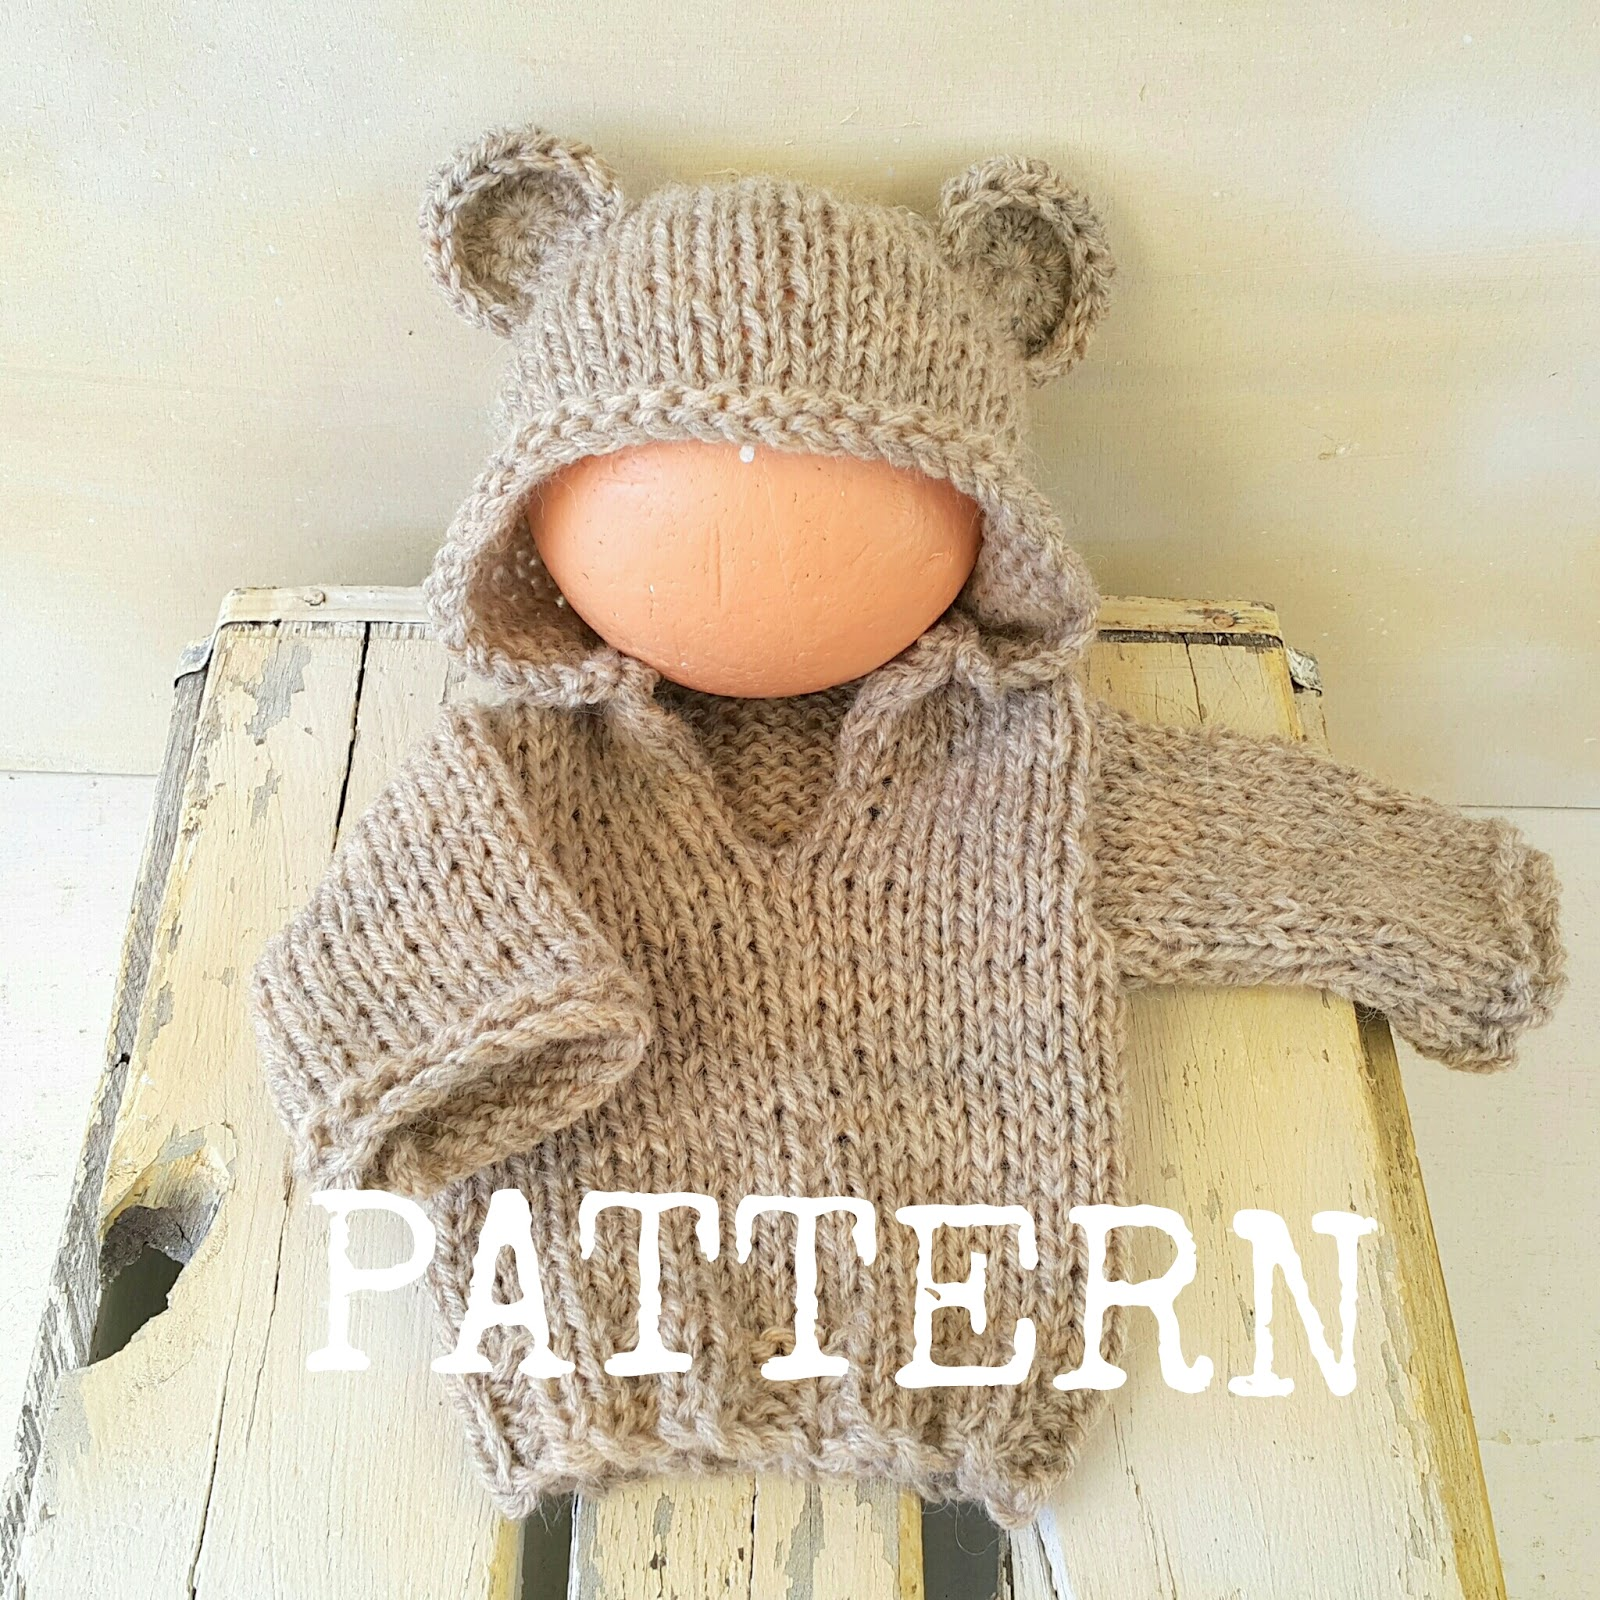 Hoodie Knitting Pattern For Babies And Toddlers : Crafty Stuff Baby Knits and Photo Props: Baby Bear Hoodie ...